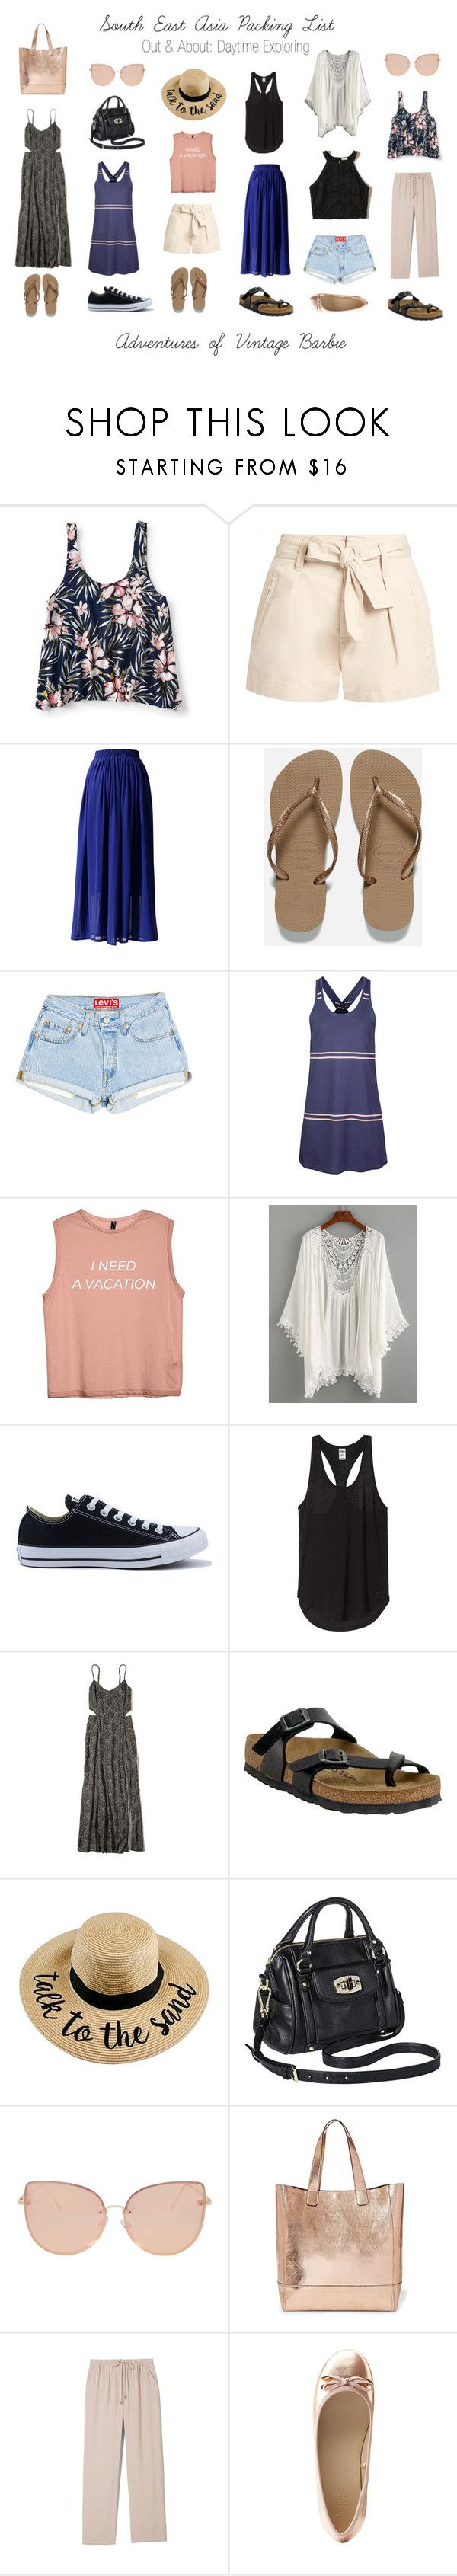 """""""South East Asia Packing Lost: Out and About"""" by vintagebarbie17 on Polyvore featuring Aéropostale, Étoile Isabel Marant, Chicwish, Havaianas, Dakine, Converse, Hollister Co., Birkenstock, Merona and Topshop"""